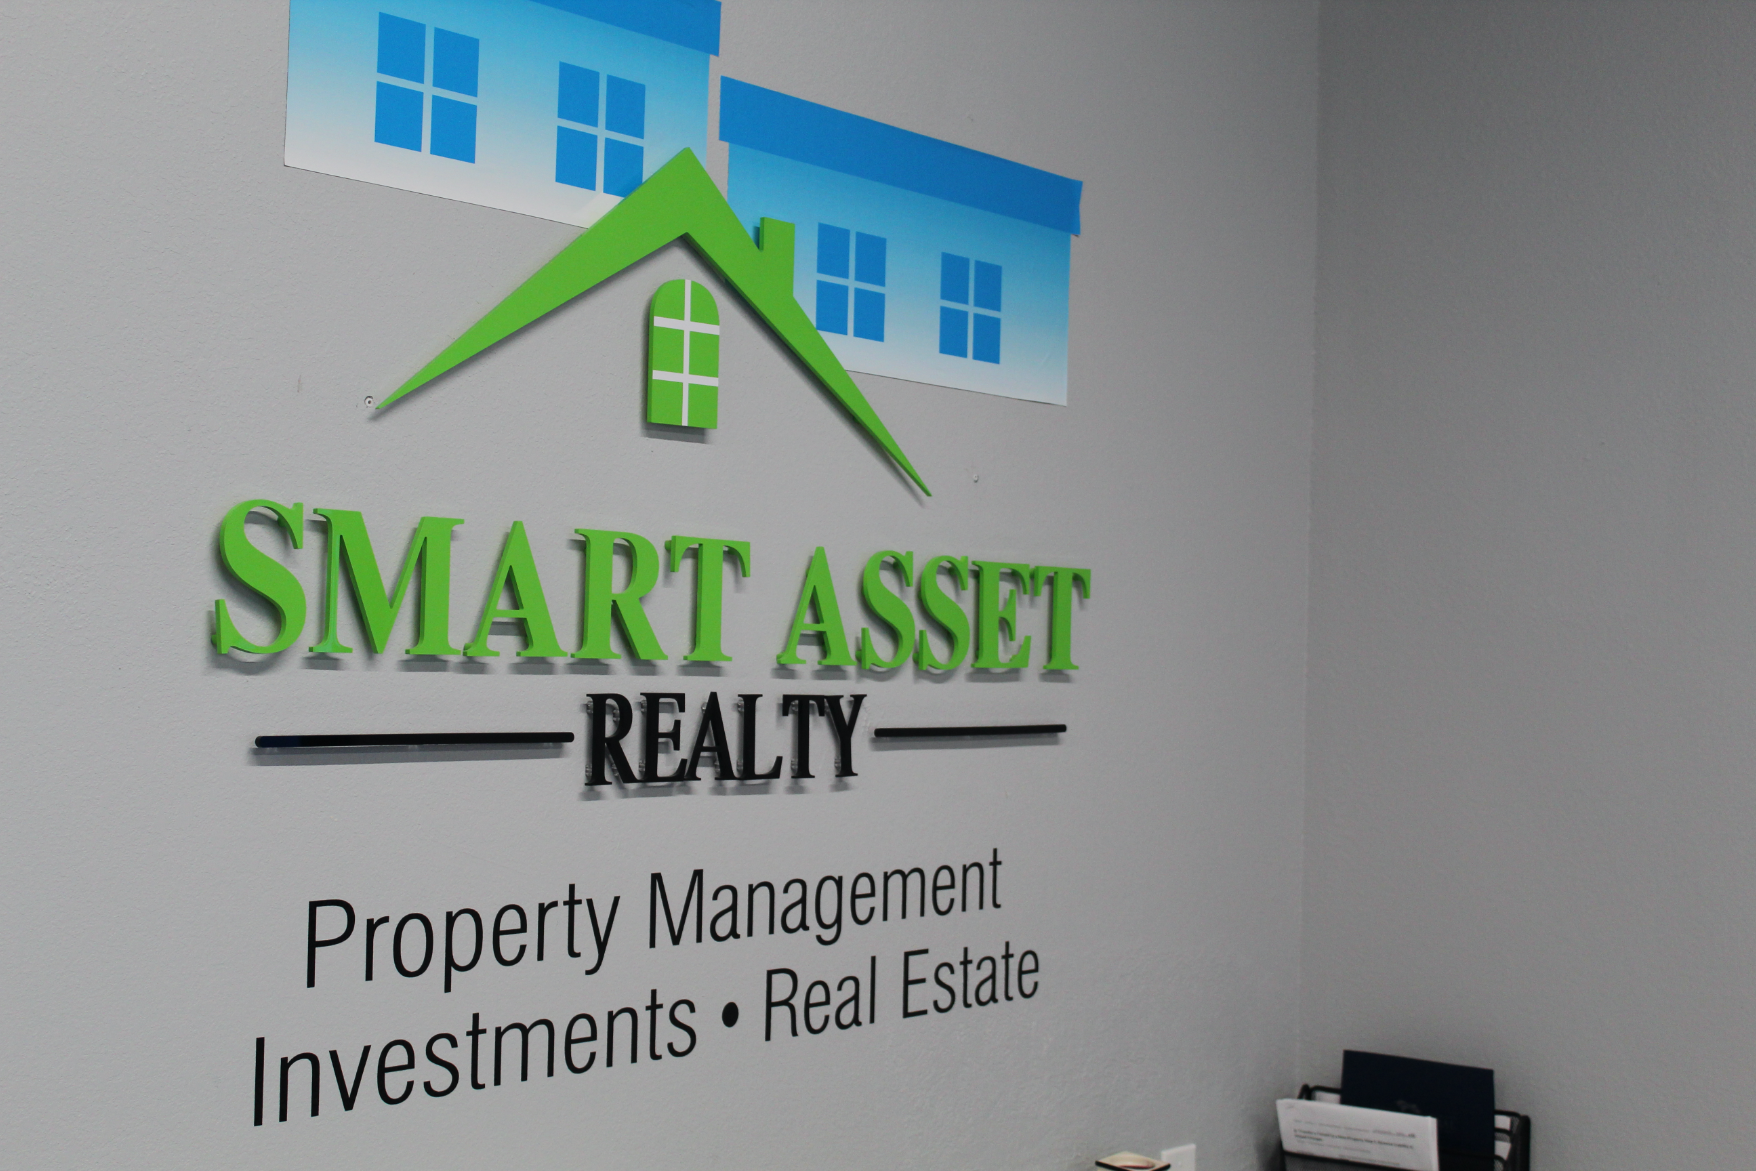 Smart Asset Realty propert management investments and real estate